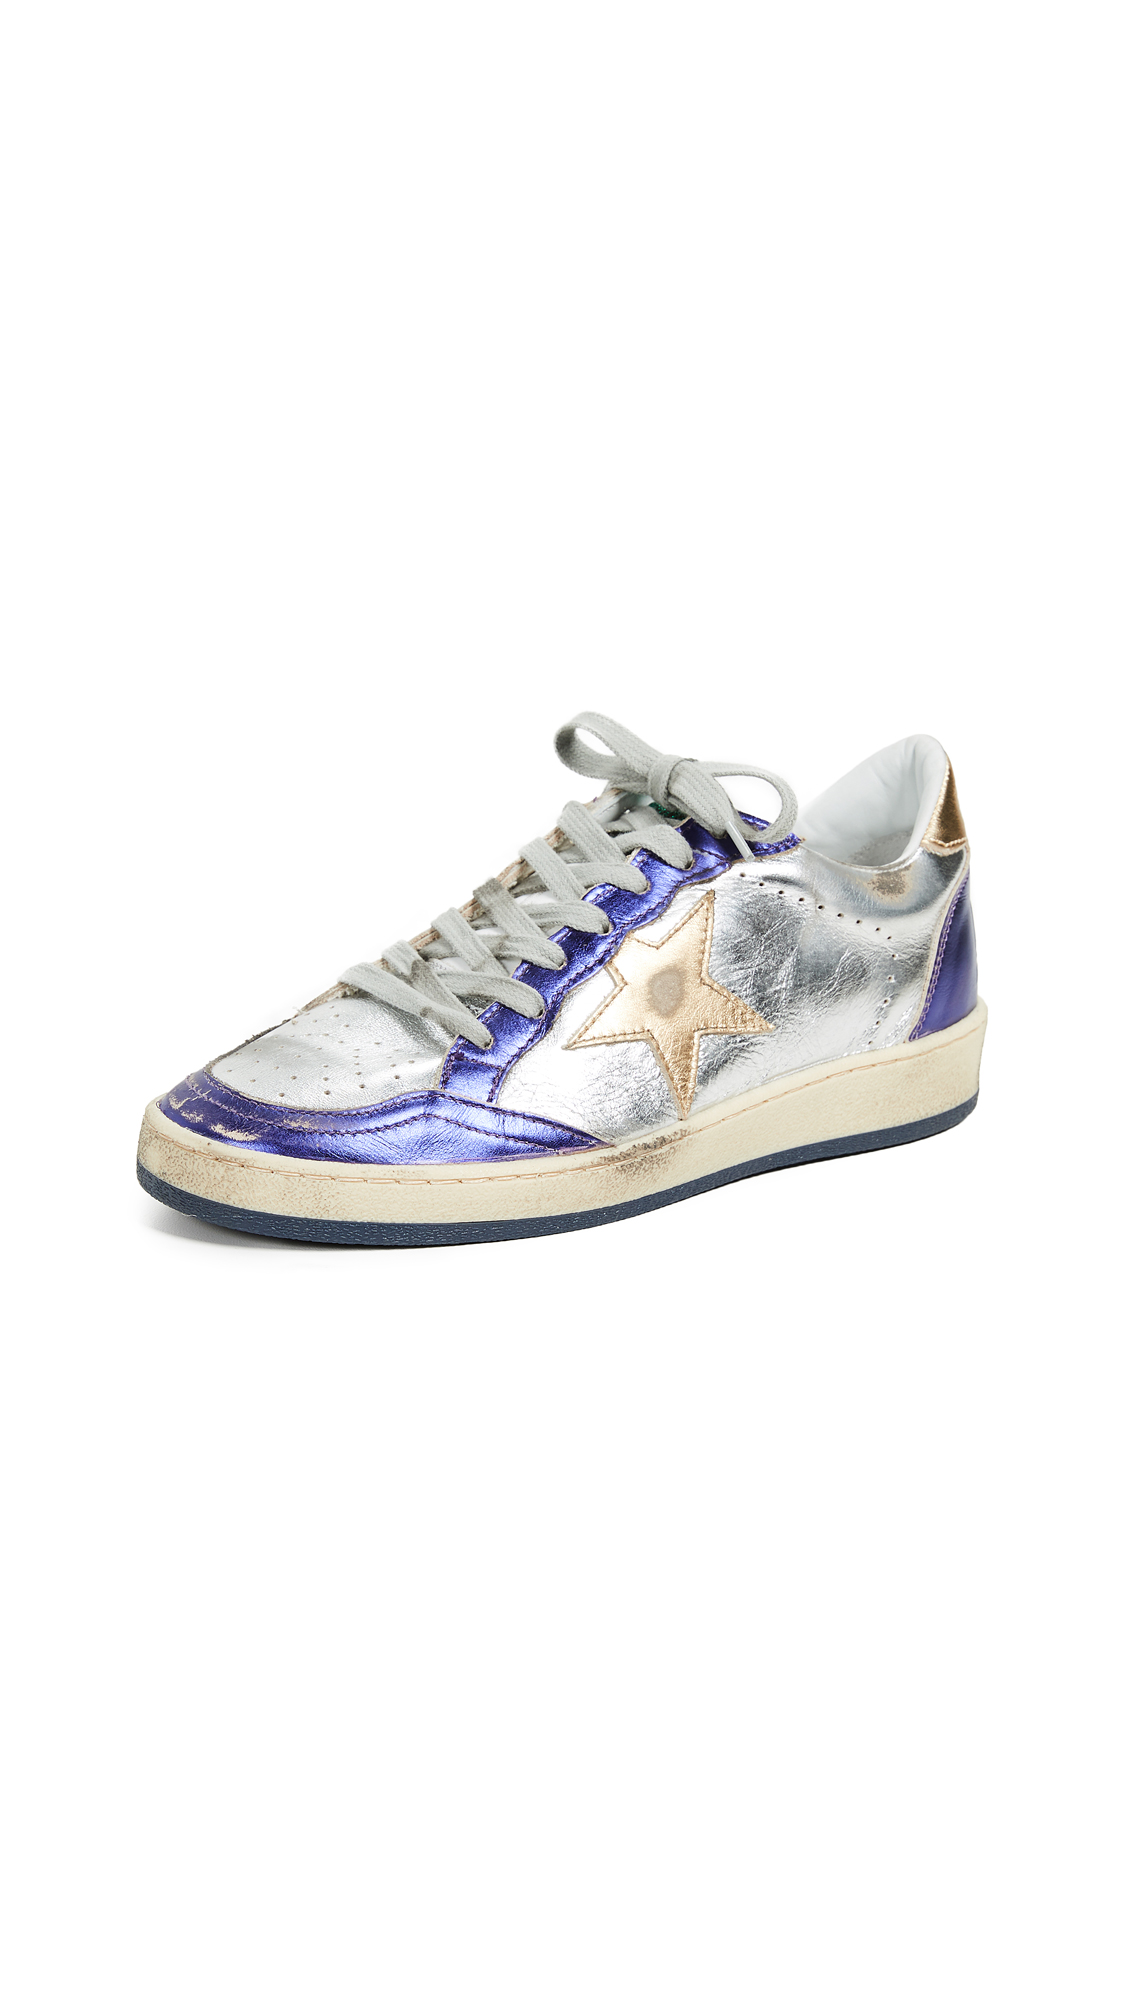 Golden Goose Ball Star Sneakers - Purple/Silver/Gold